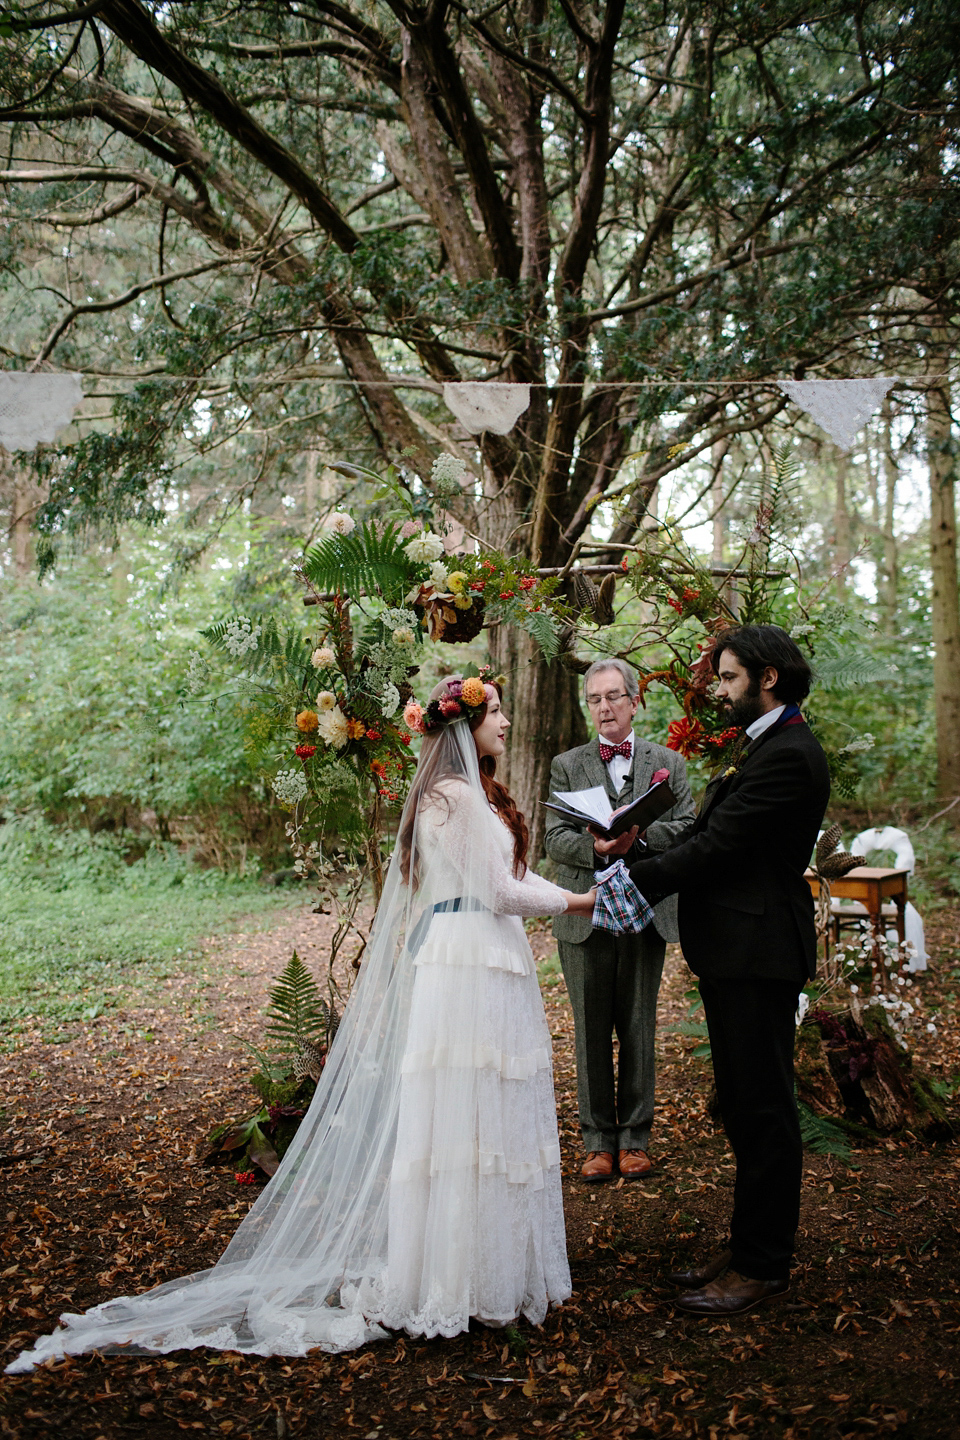 A Humanist Woodland Wedding For An Ethereal Flame-Haired ...